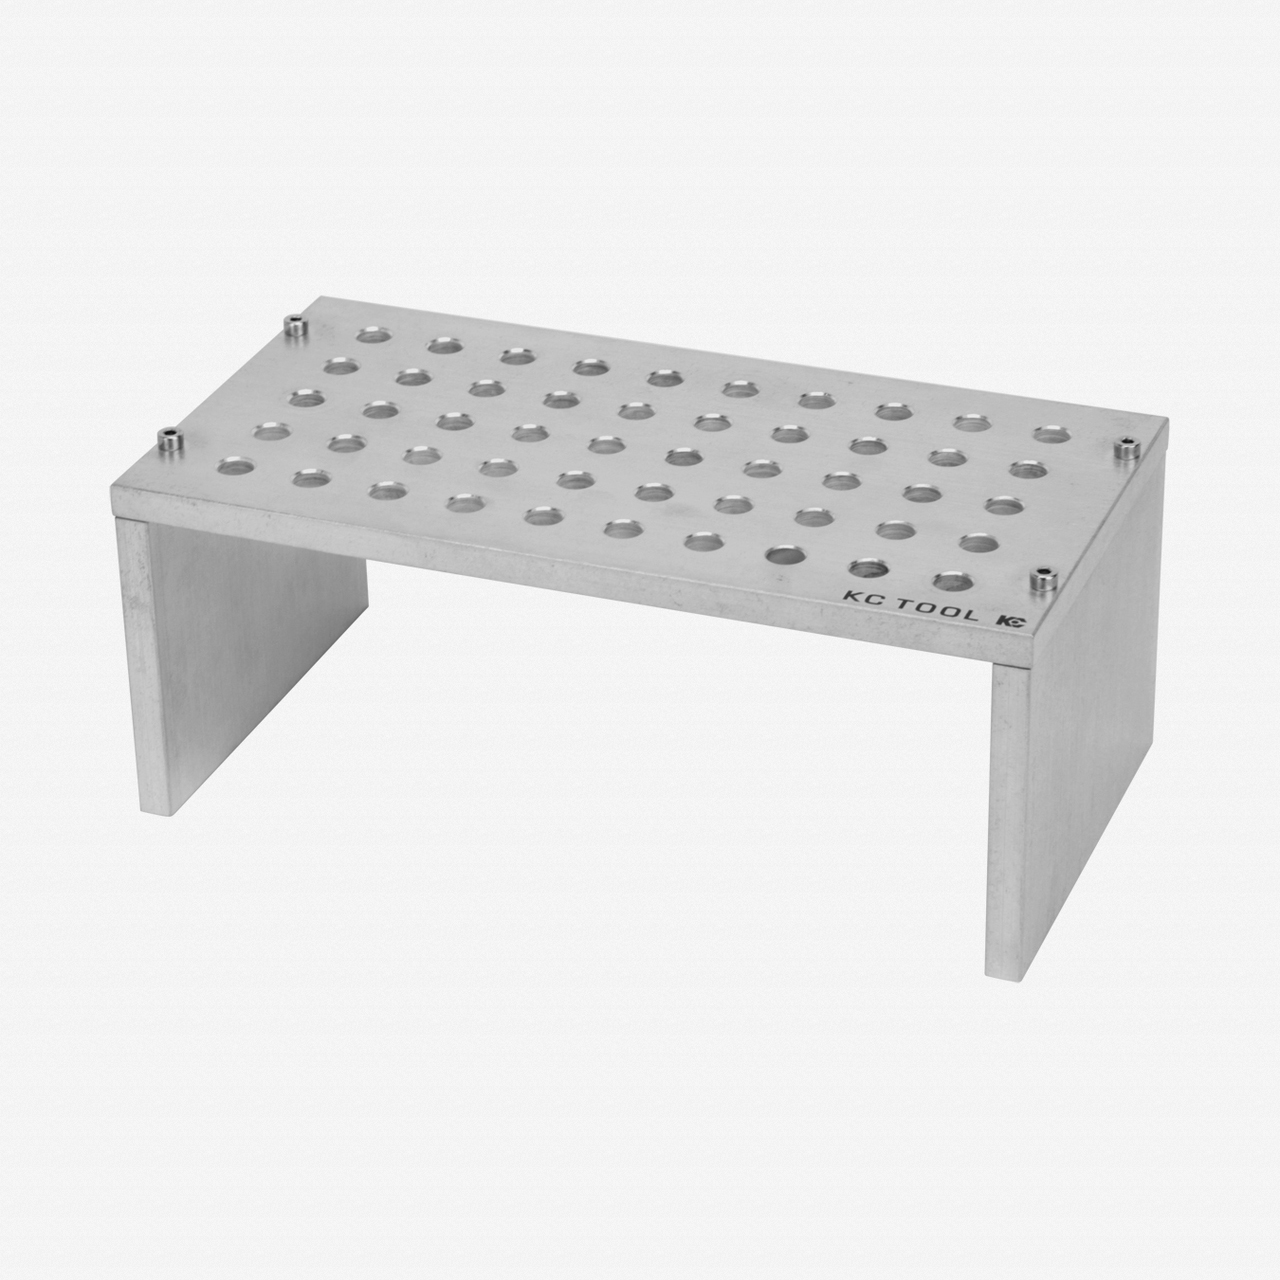 KC Tool Aluminum Bench Top Stand for Precision Tools - 50 Holes, Tumbled Finish - KC Tool